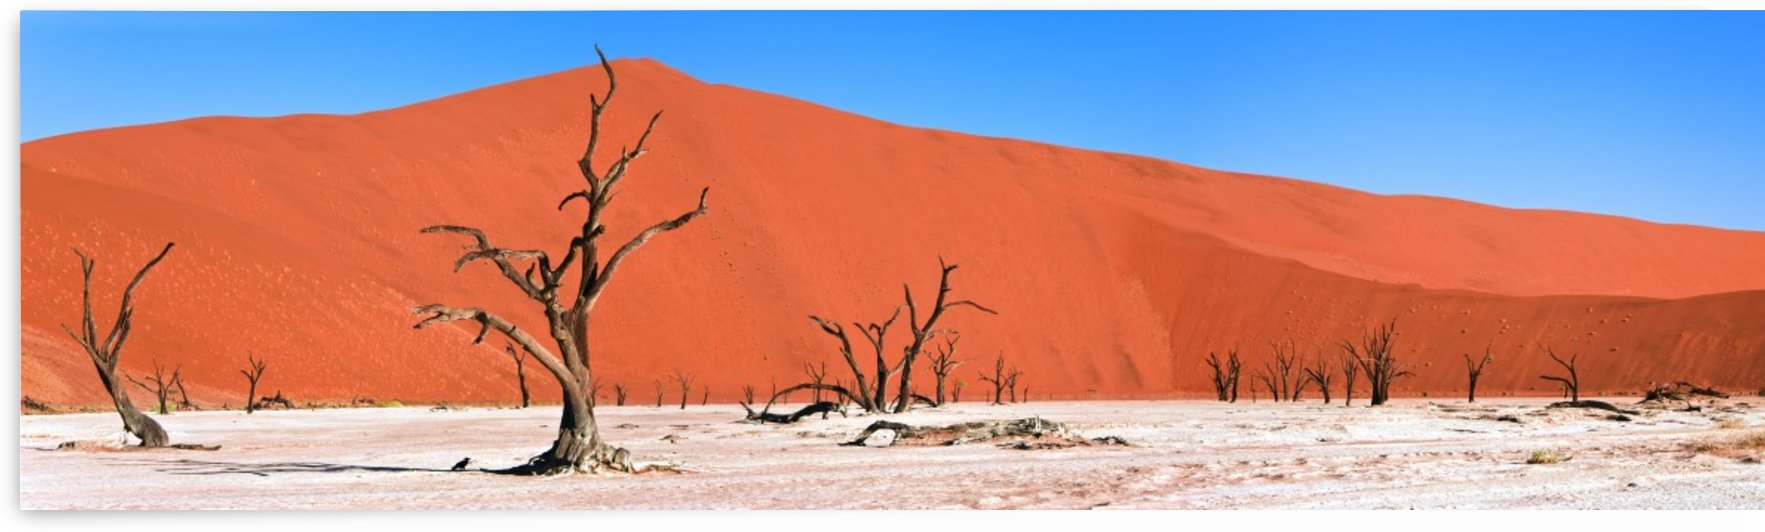 Namib Desert, Namibia, Africa by PacificStock